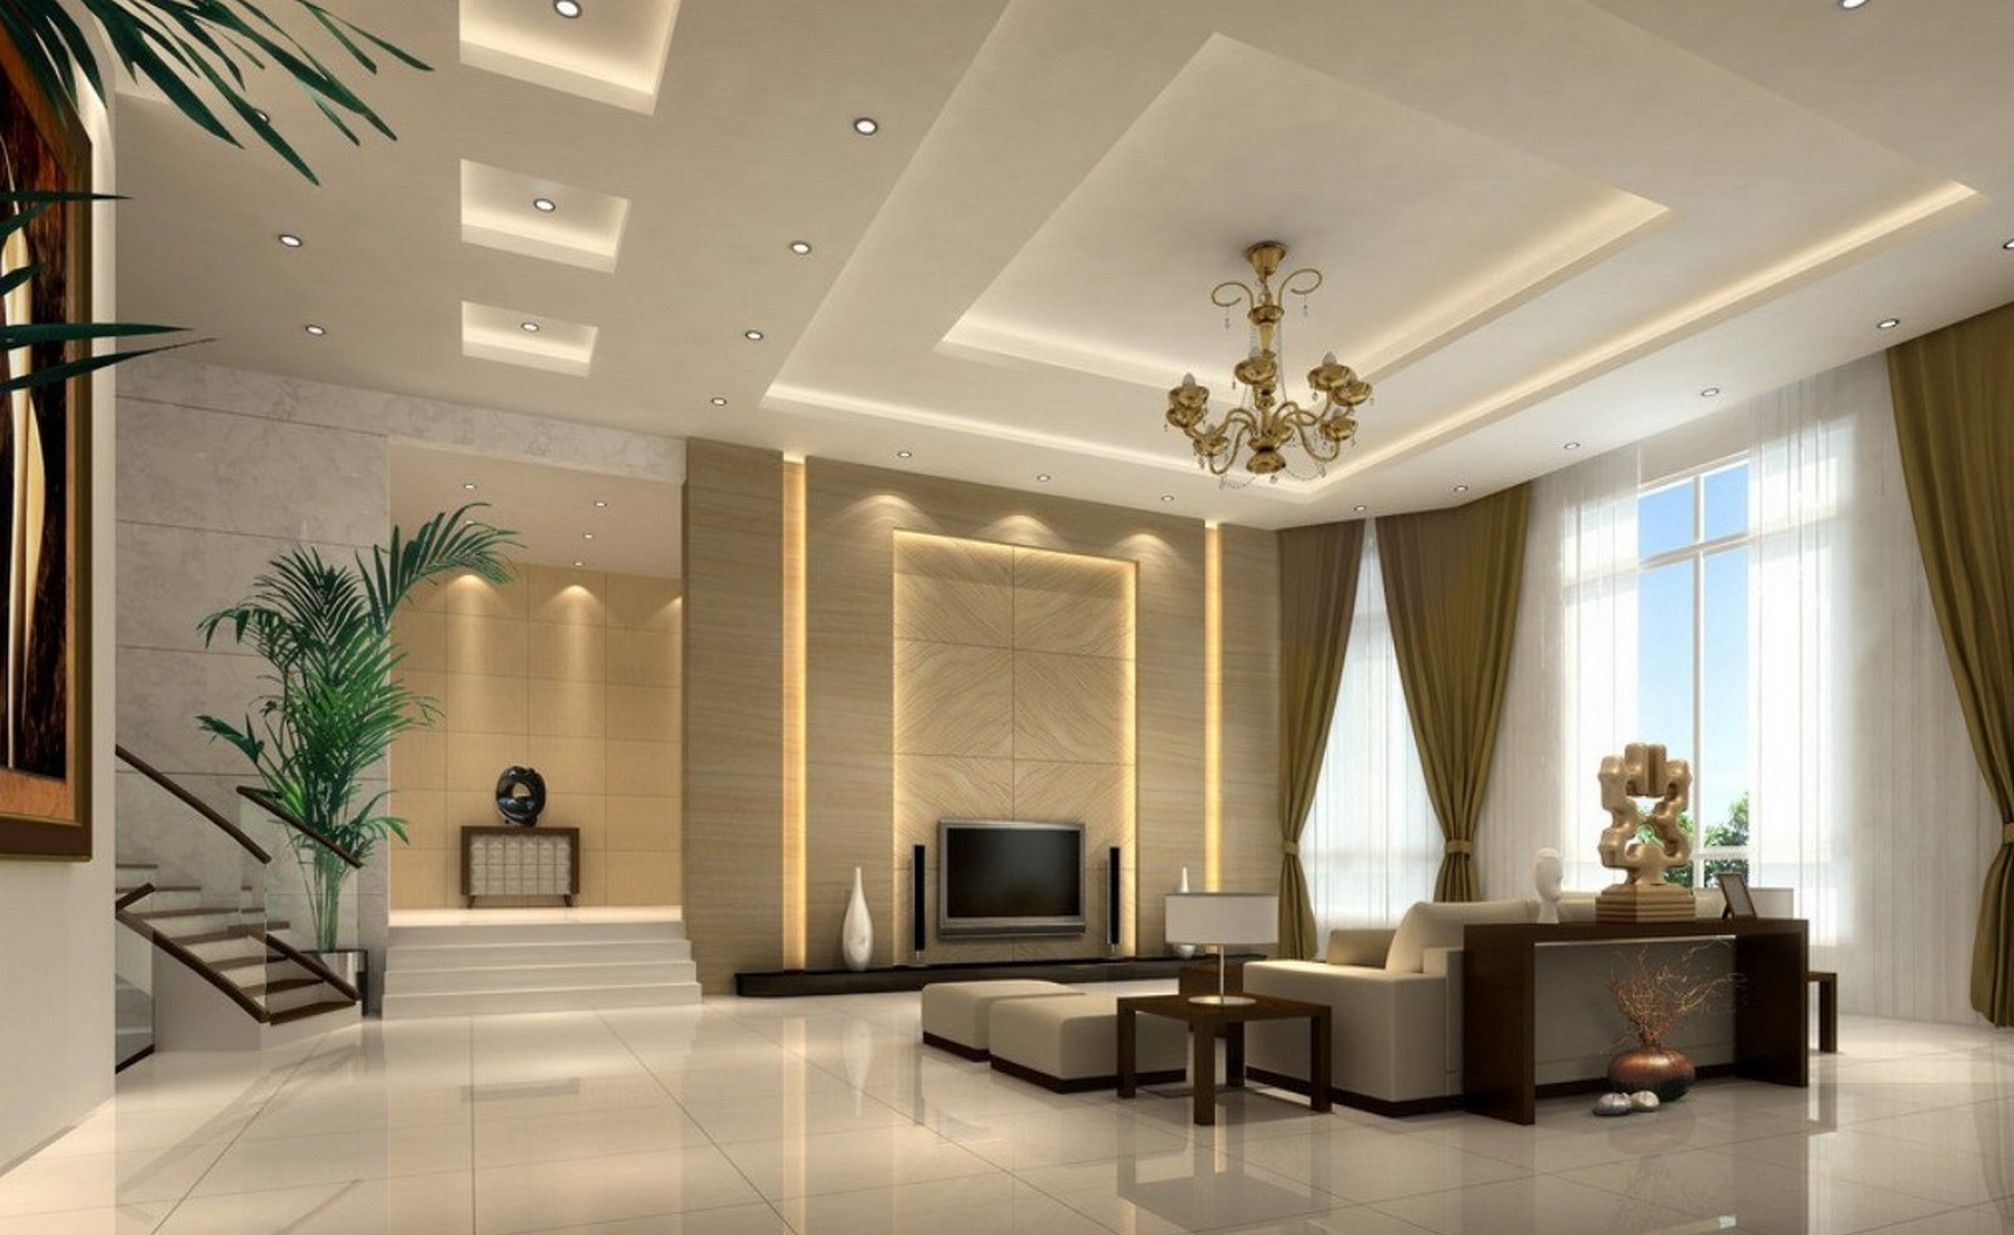 Image result for gypsum board ceiling design ideas